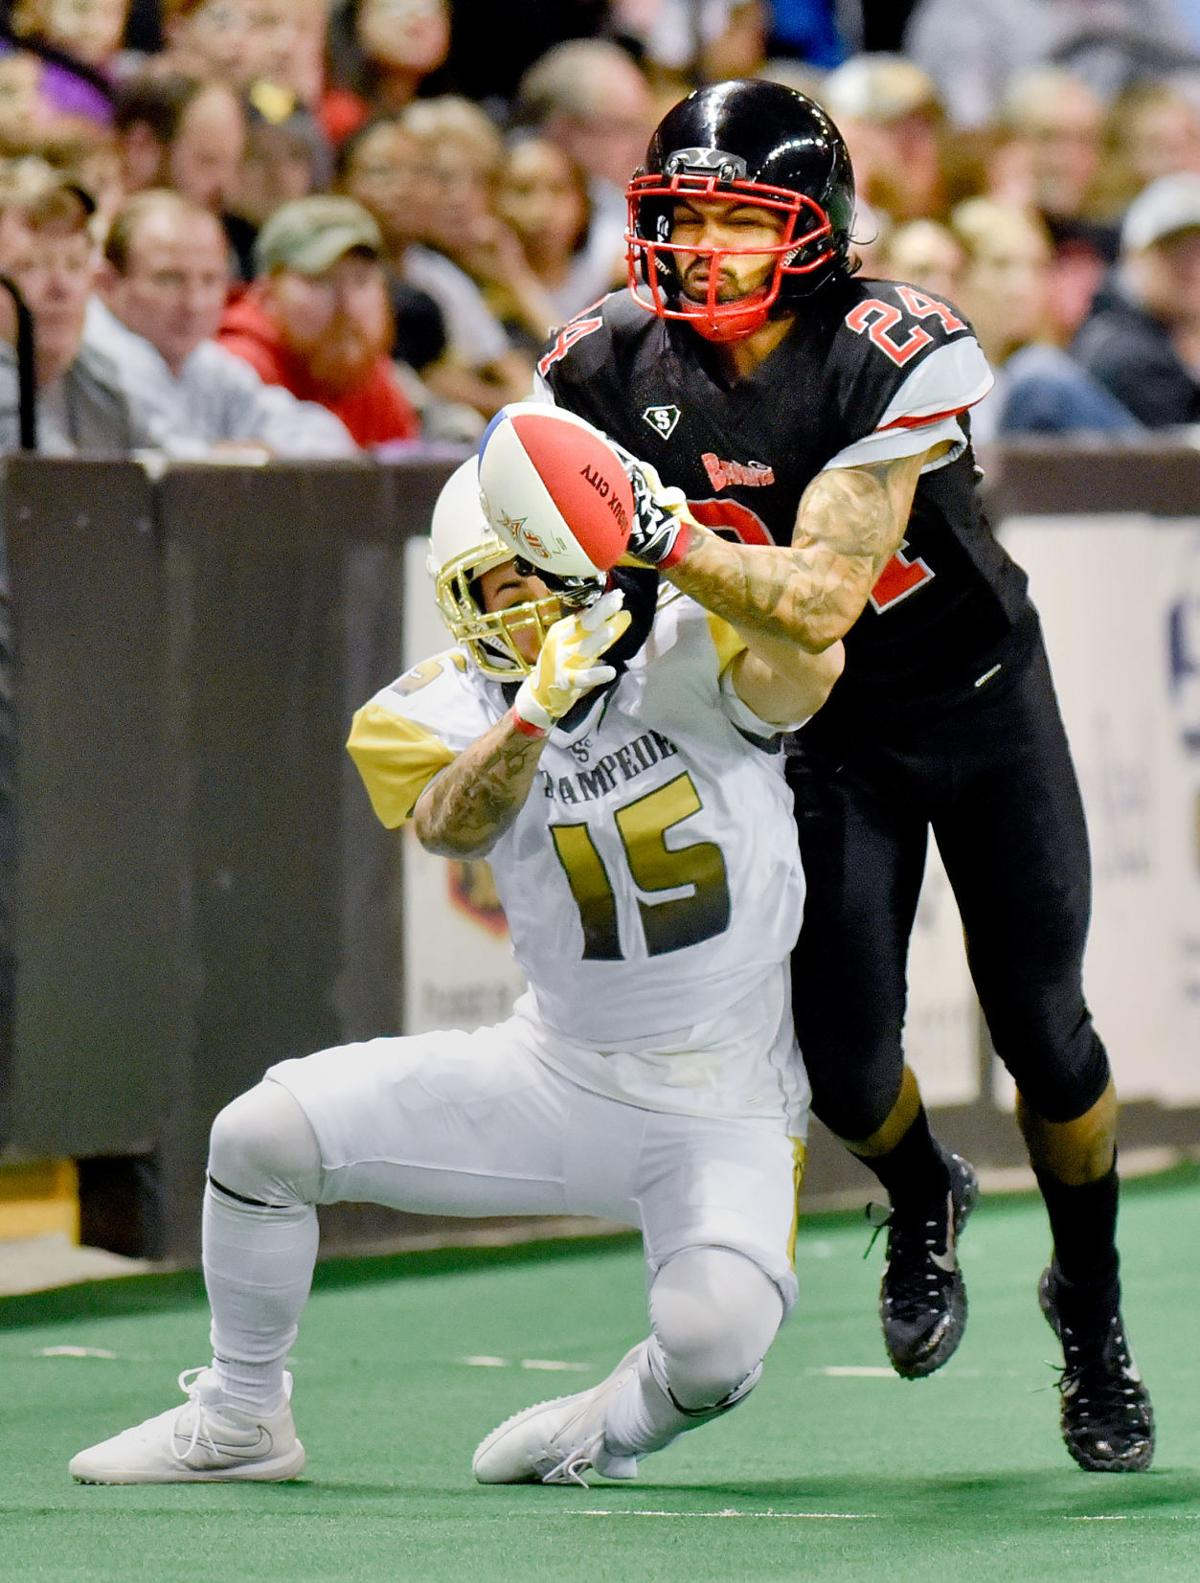 Football Sioux City Stampede at Bandits